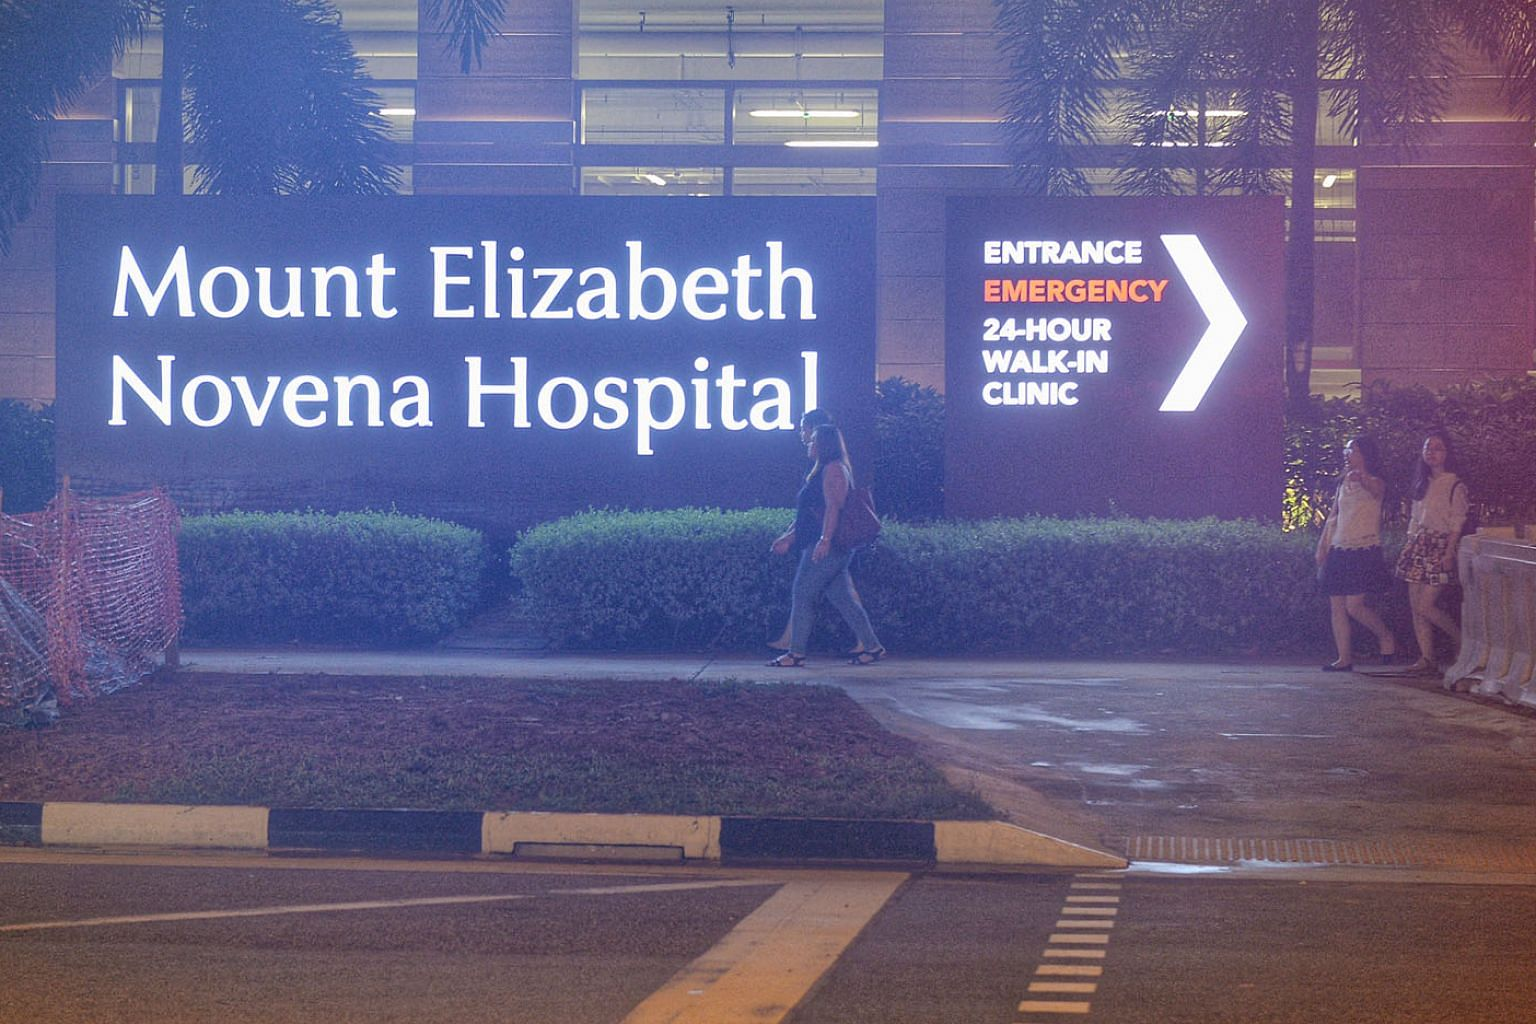 Mount Elizabeth Novena Hospital in Singapore, as well as other hospitals such as Gleneagles Kota Kinabalu Hospital and Gleneagles Medini Hospital in Malaysia, helped boost revenue at IHH's Parkway Pantai division.